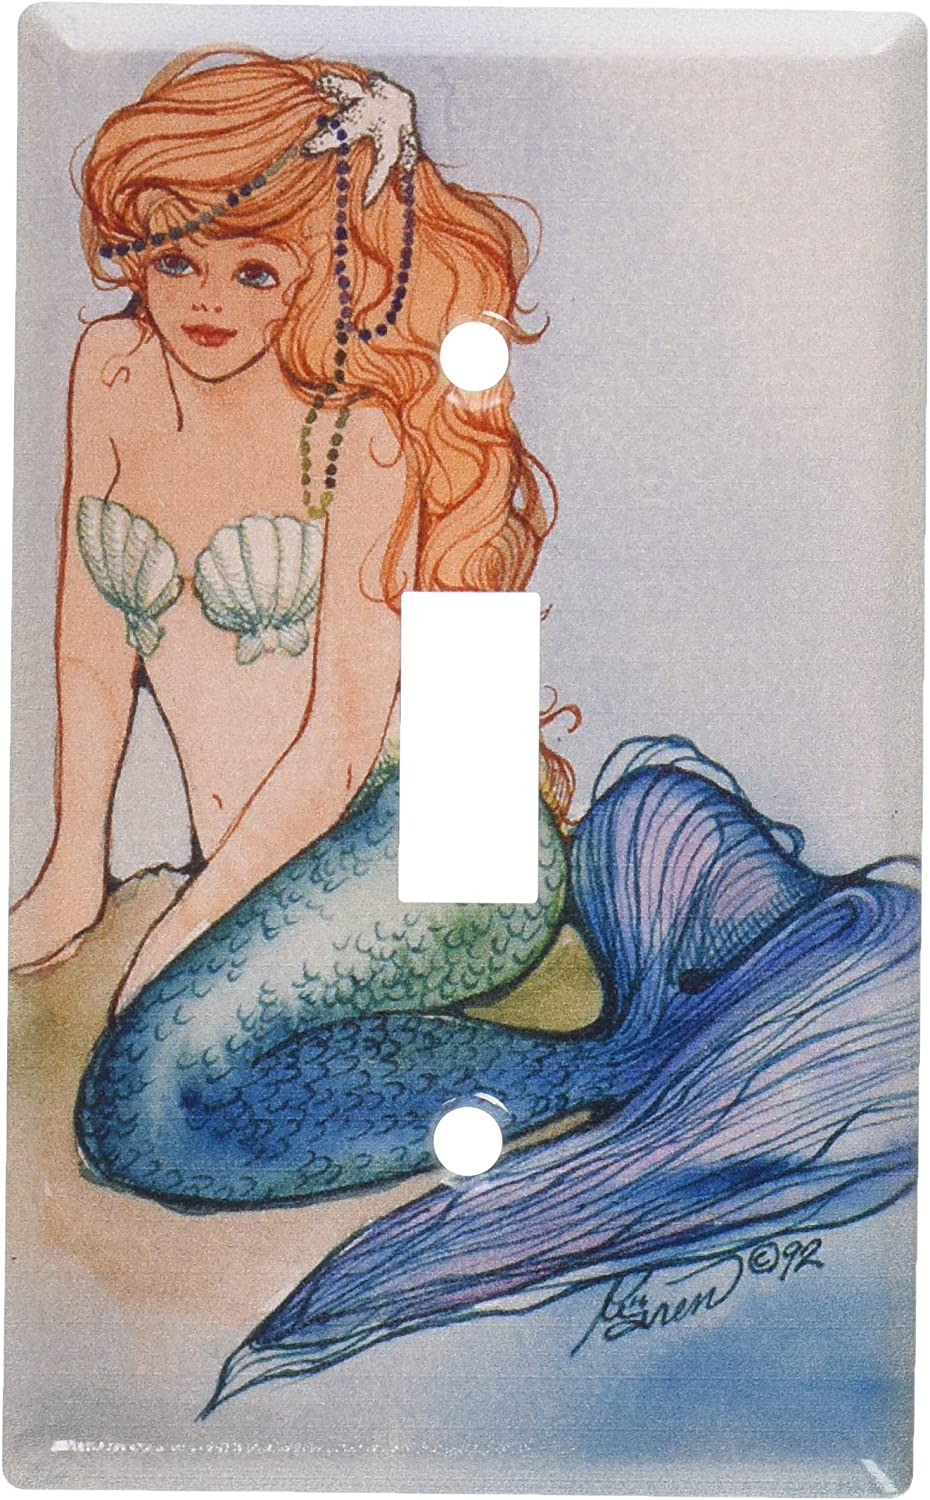 Art Plates Mermaid Switch Plate Outlet Cover Mermaid Light Switch Cover Amazon Com